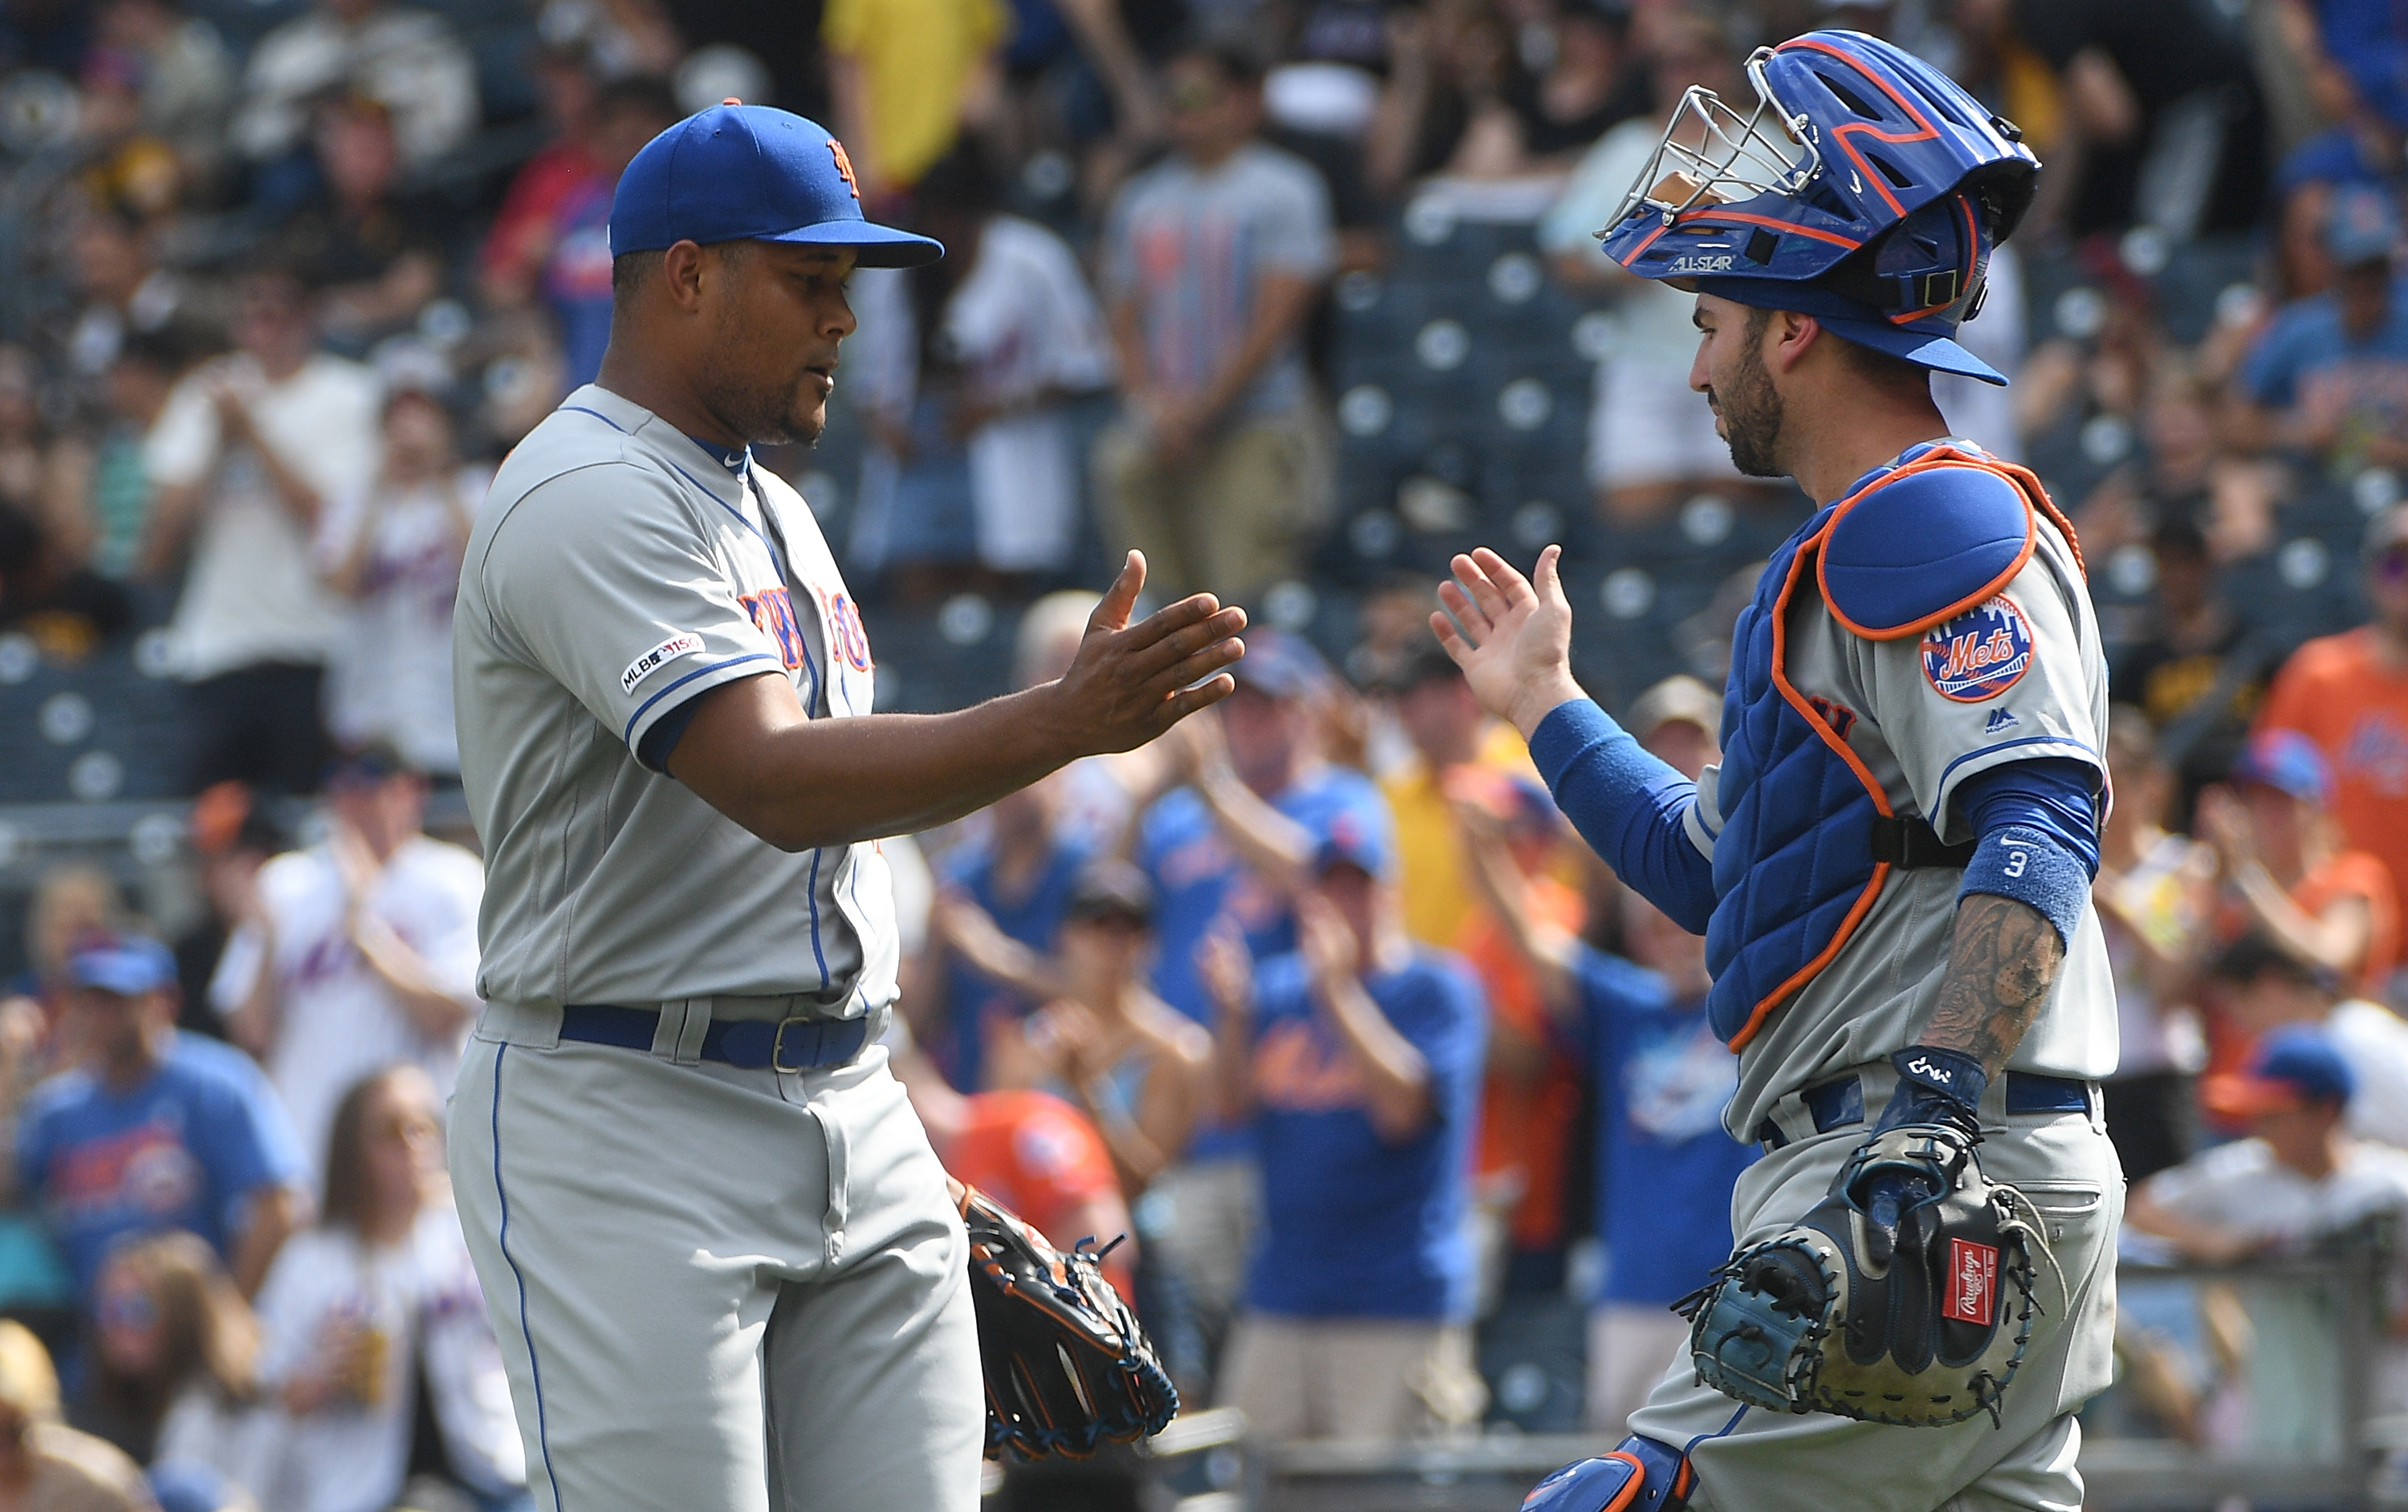 National League Wild Card Race Bets On Mets Beginning To Stack Up